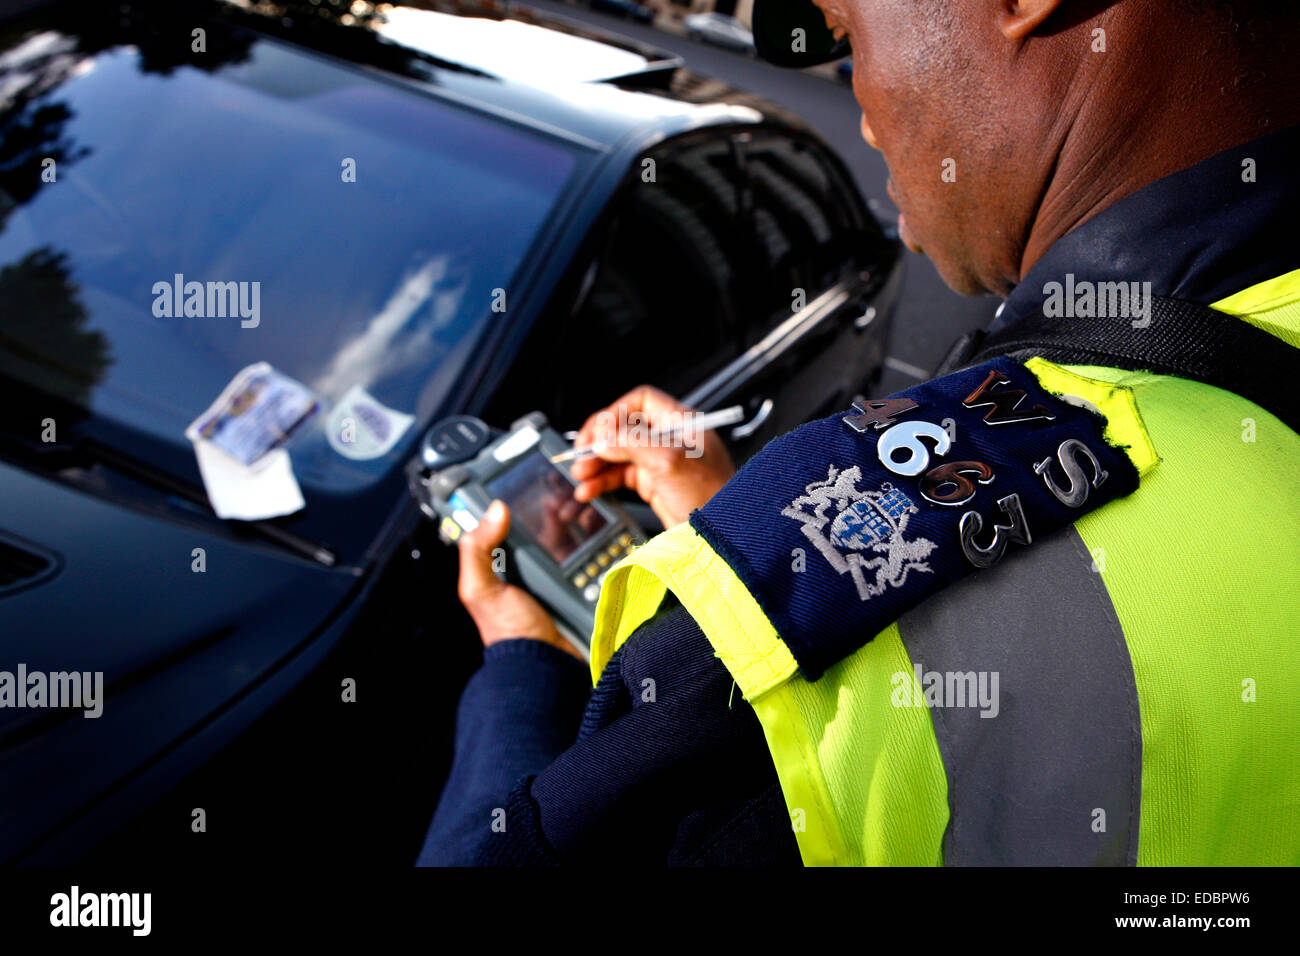 A traffic warden issues a parking ticket - Stock Image